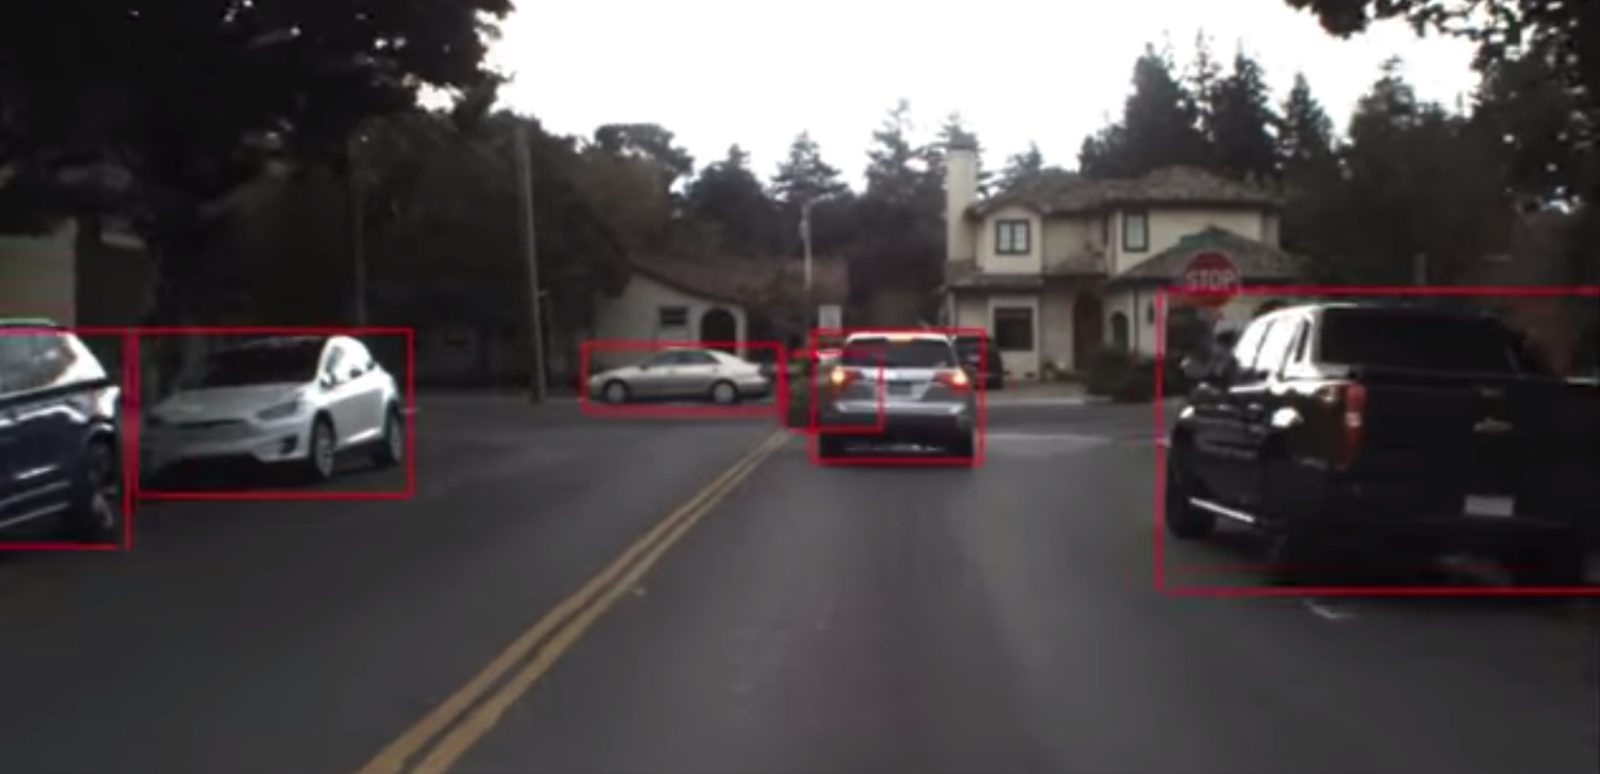 Tesla acquires AI startup DeepScale to help build self-driving robotaxis